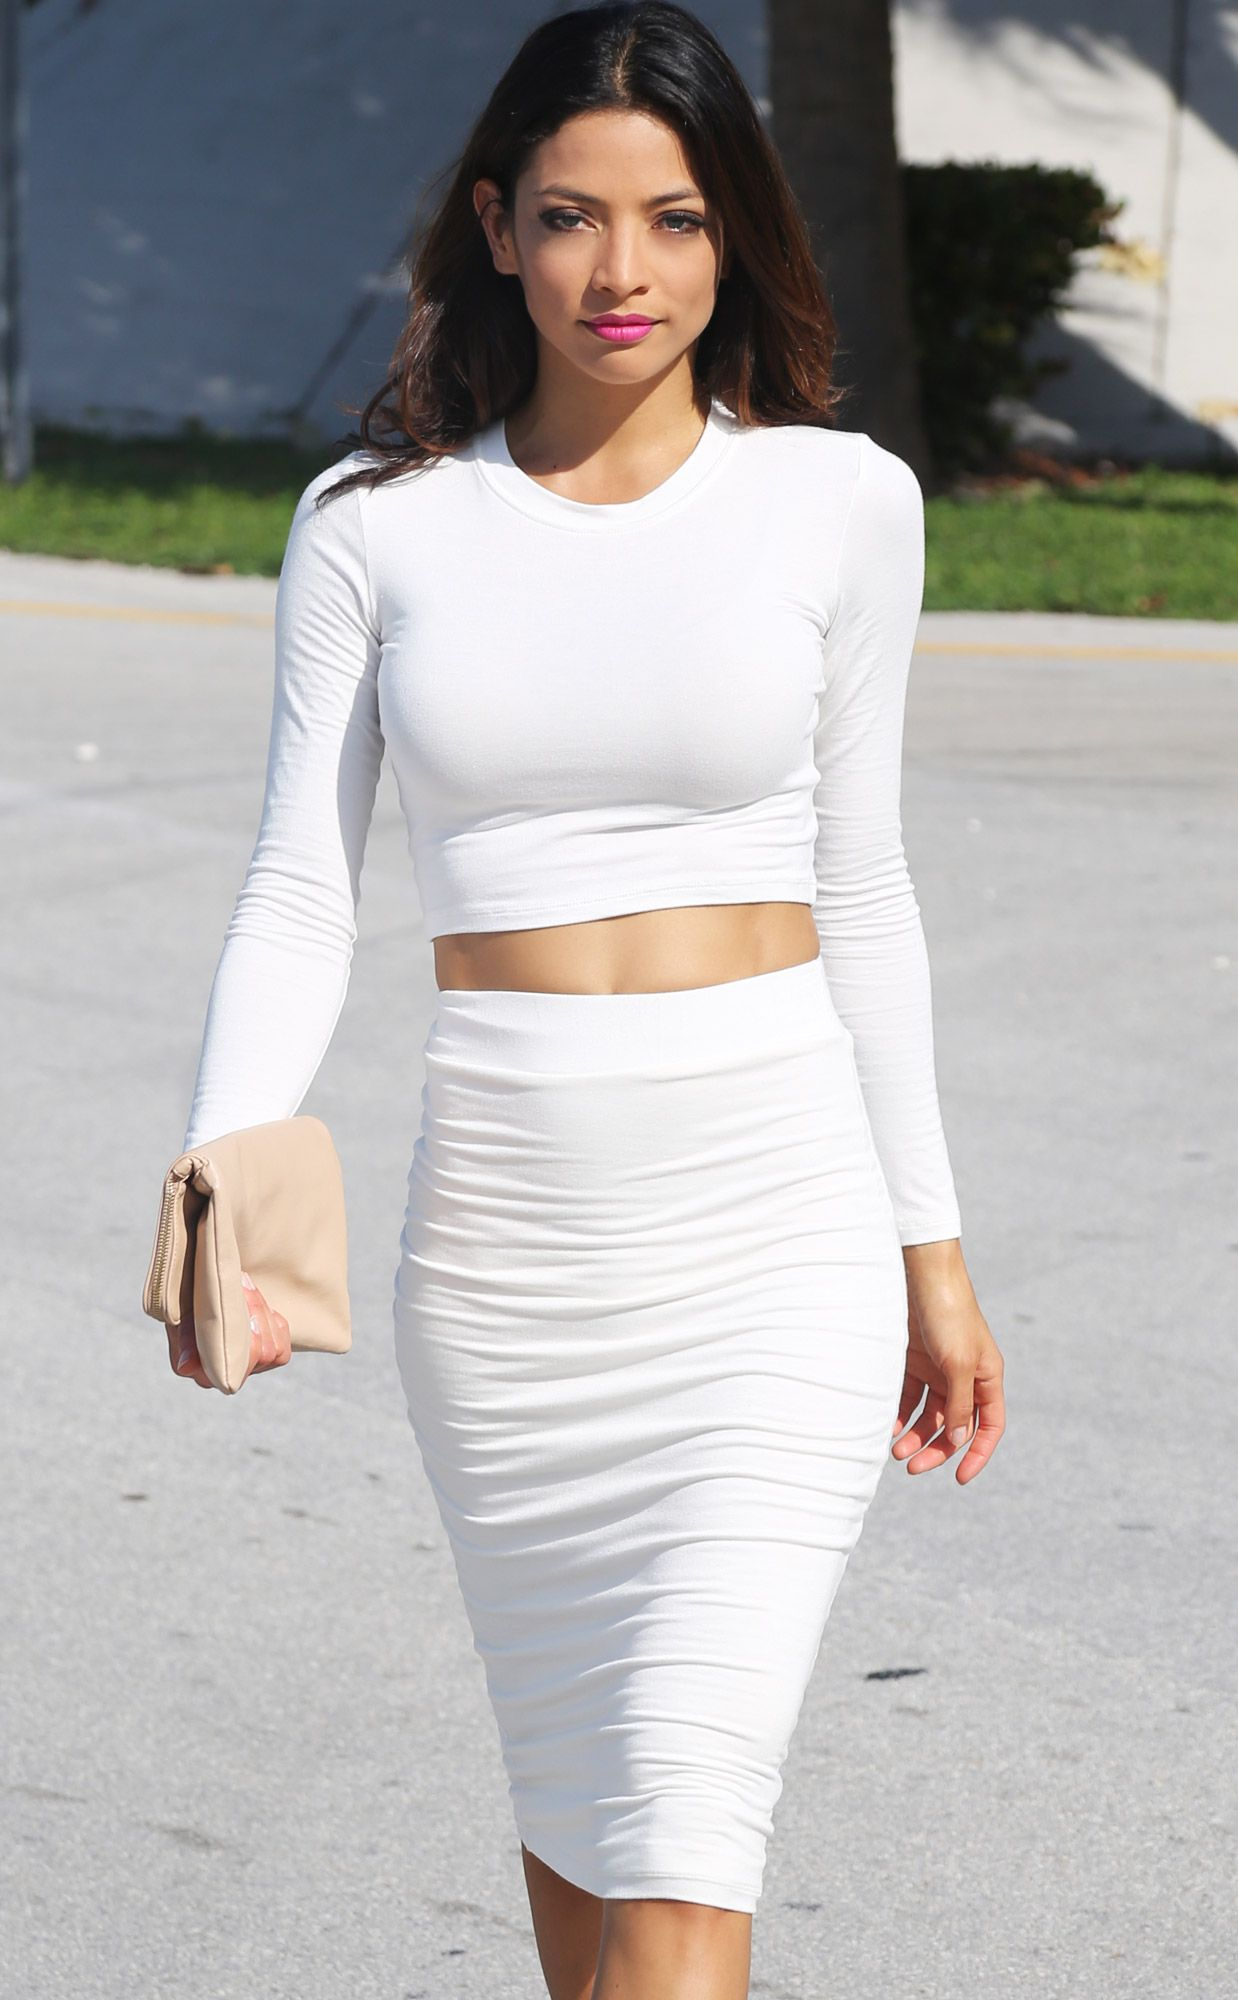 White Long Sleeve Power Crop Top SOLD OUT | White crop tops, White ...